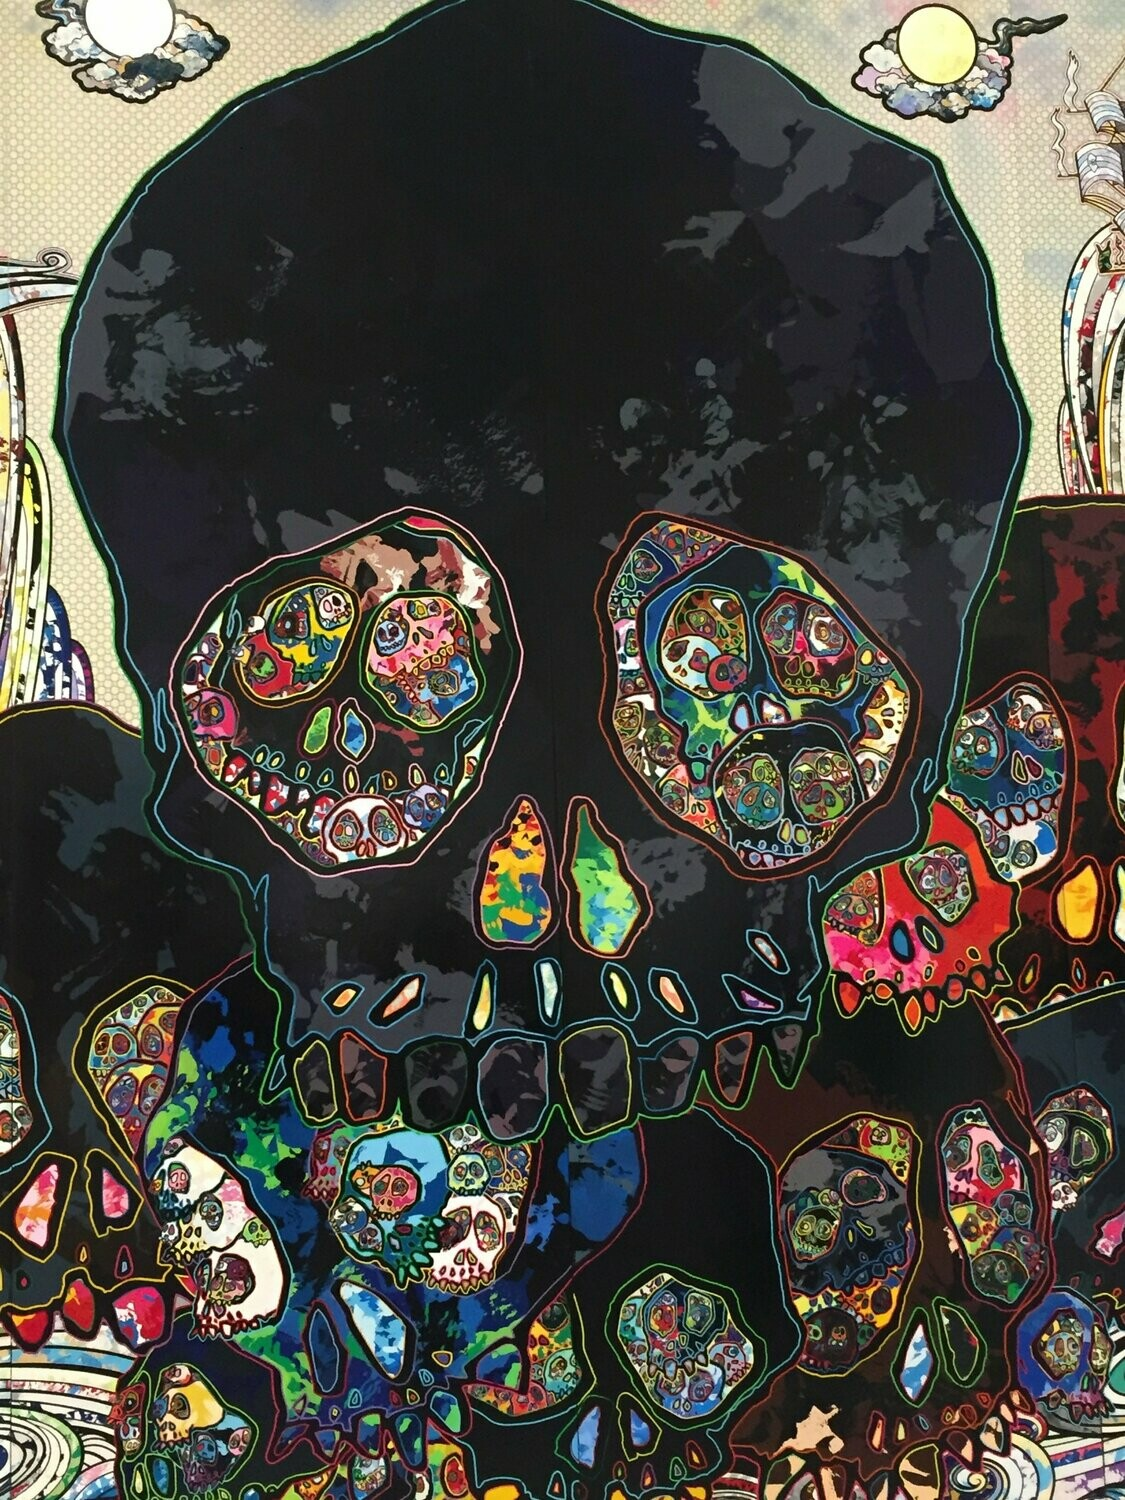 Skull 08 - Full Drill Diamond Painting - Specially ordered for you. Delivery is approximately 4 - 6 weeks.